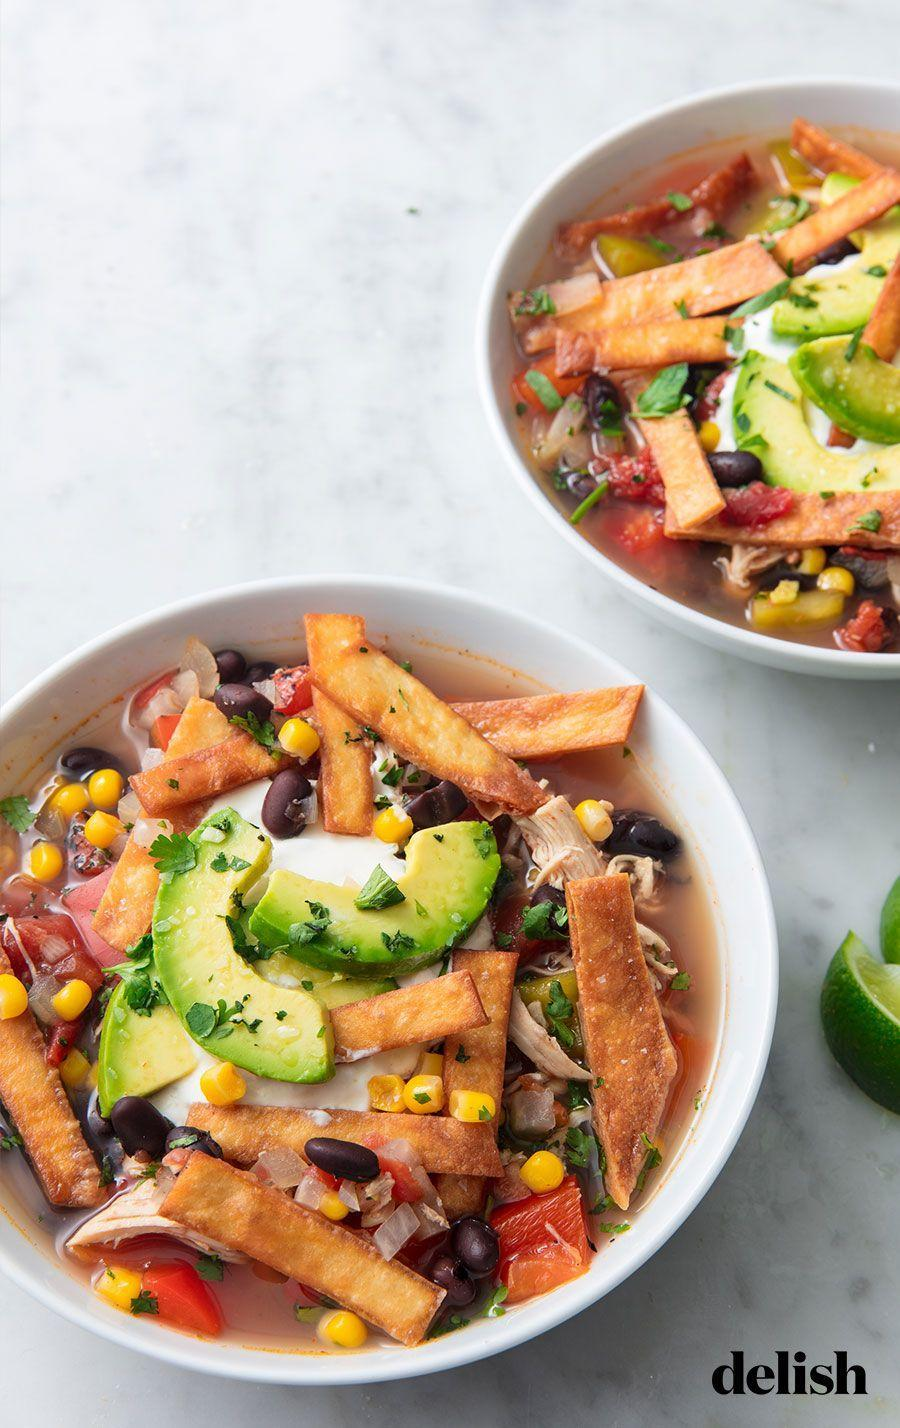 """<p>Just another excuse to eat more avocado. </p><p>Get the recipe from <a href=""""https://www.delish.com/cooking/recipe-ideas/recipes/a51825/best-slow-cooker-chicken-tortilla-soup-recipe/"""" rel=""""nofollow noopener"""" target=""""_blank"""" data-ylk=""""slk:Delish."""" class=""""link rapid-noclick-resp"""">Delish.</a></p>"""